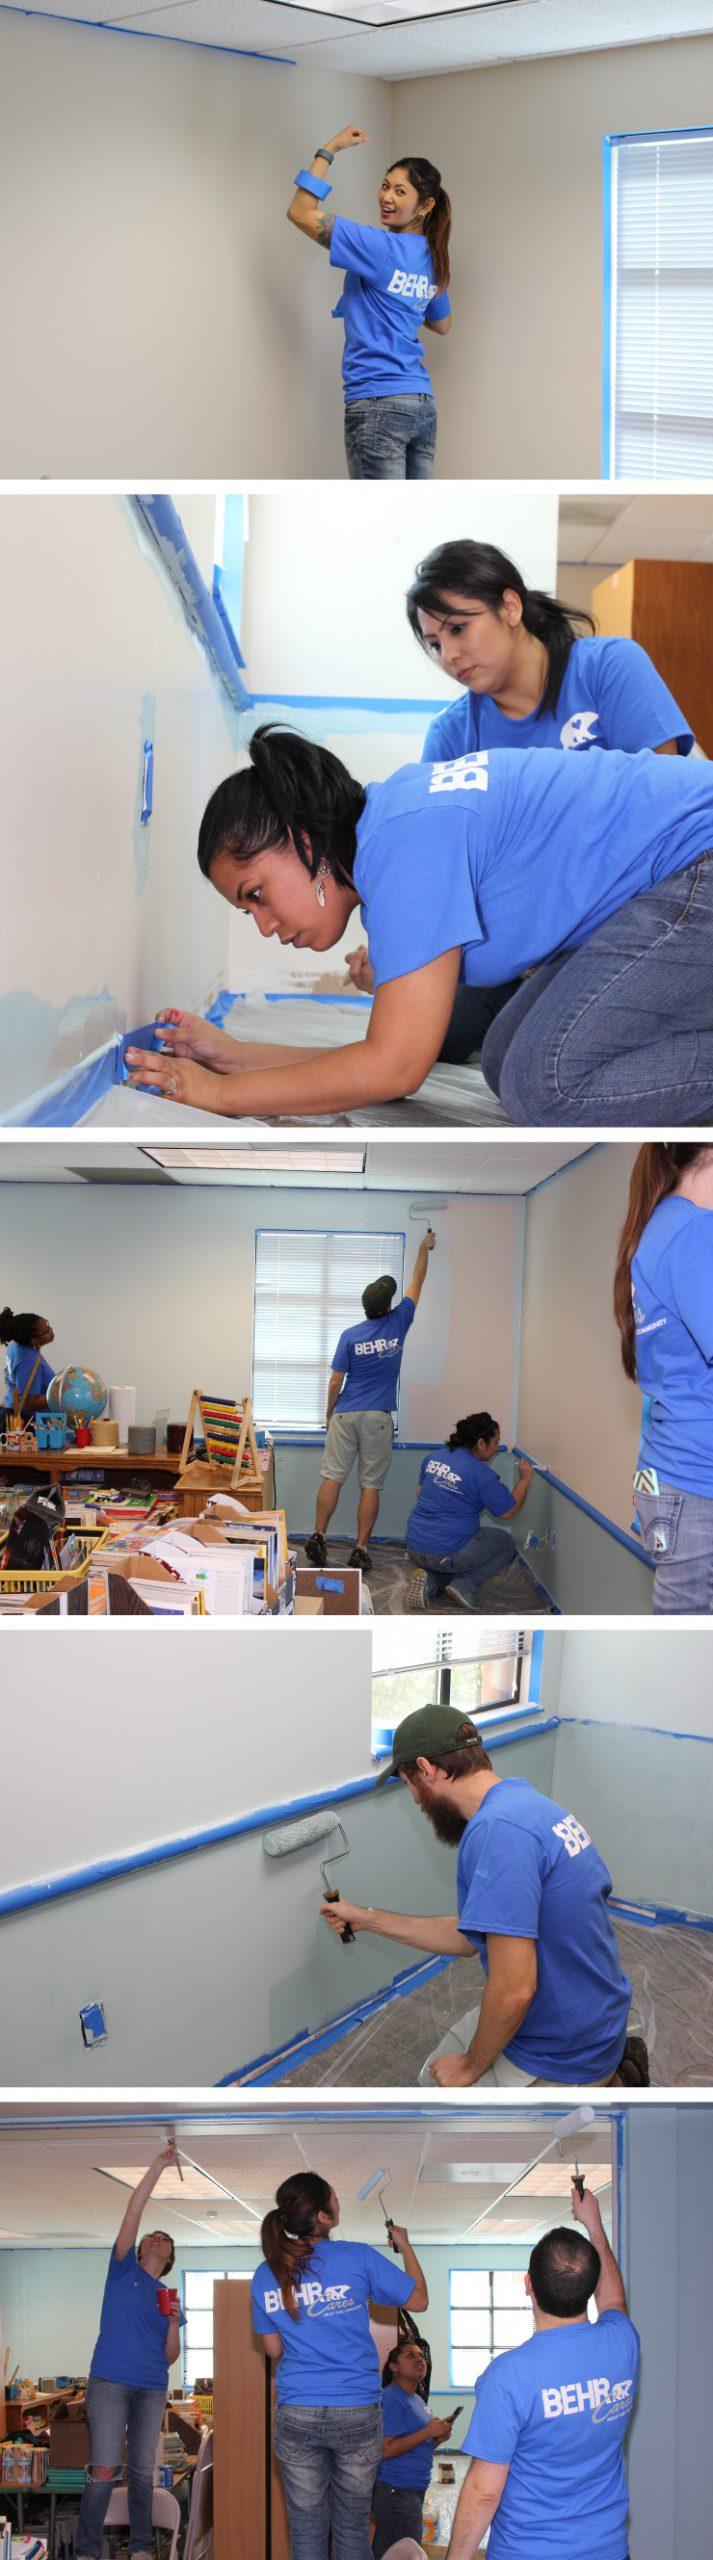 Several photos of painting volunteers, showing different painting steps.